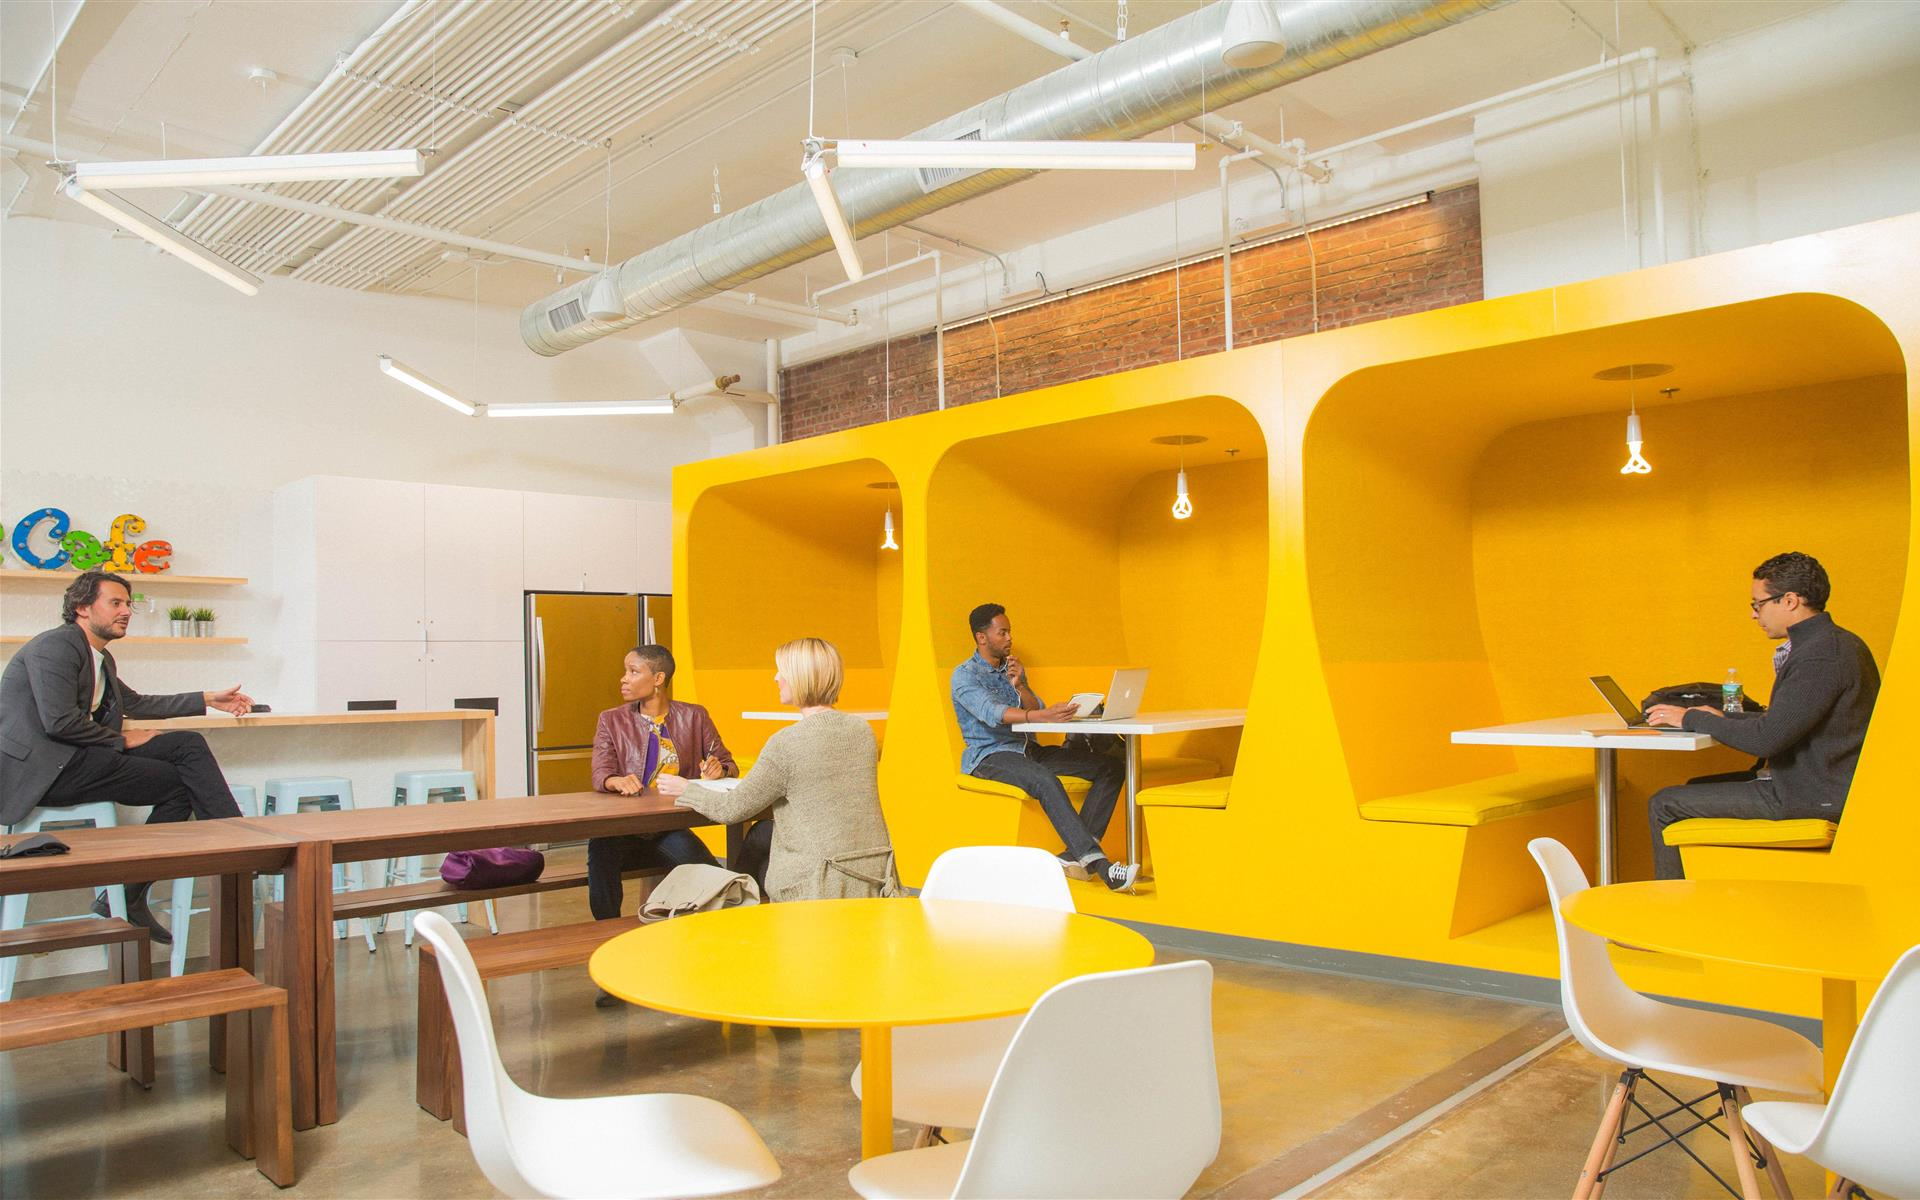 Coworking at Kearny Point - Hot Desks at Kearny Point